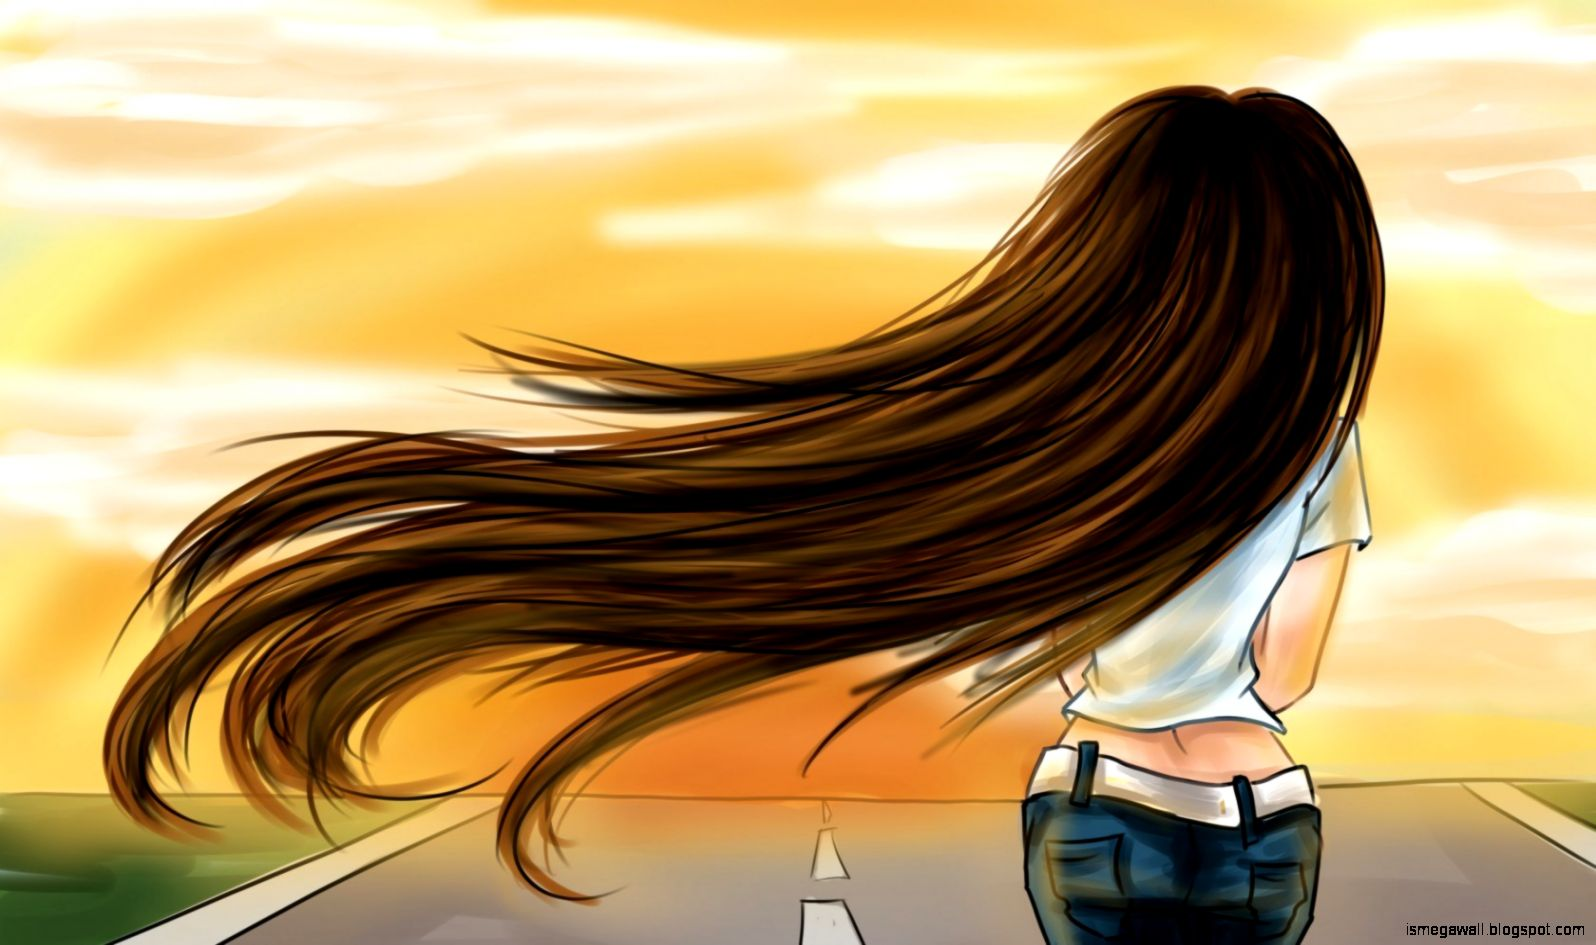 392670f138 View Original Size. 720x1280 Long Hair Girl Htc one x wallpaper Image  source from this